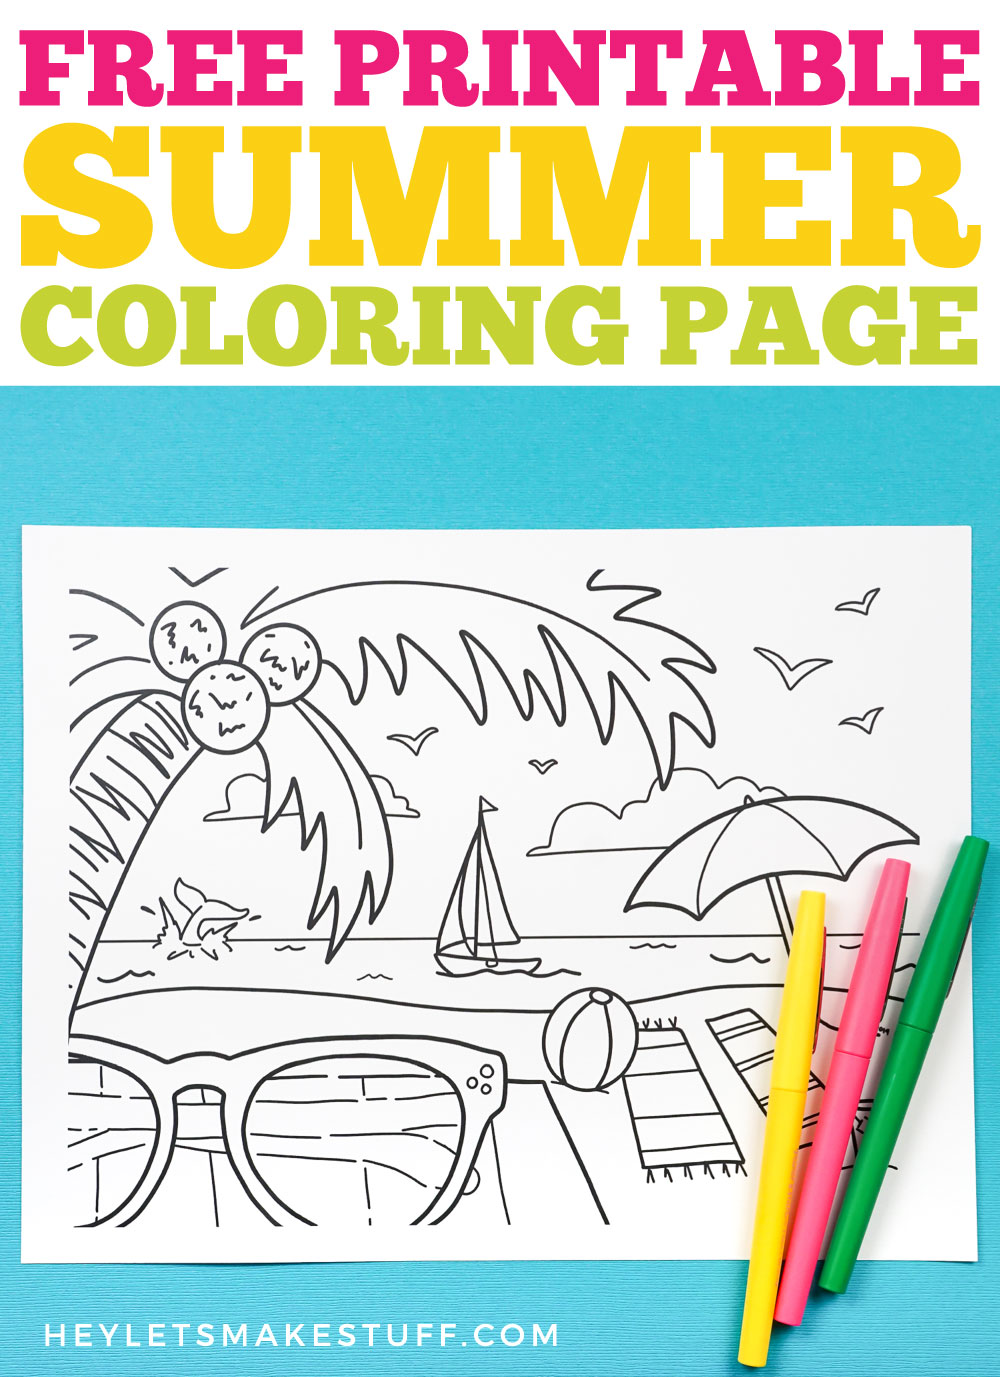 Free printable summer coloring page pin image